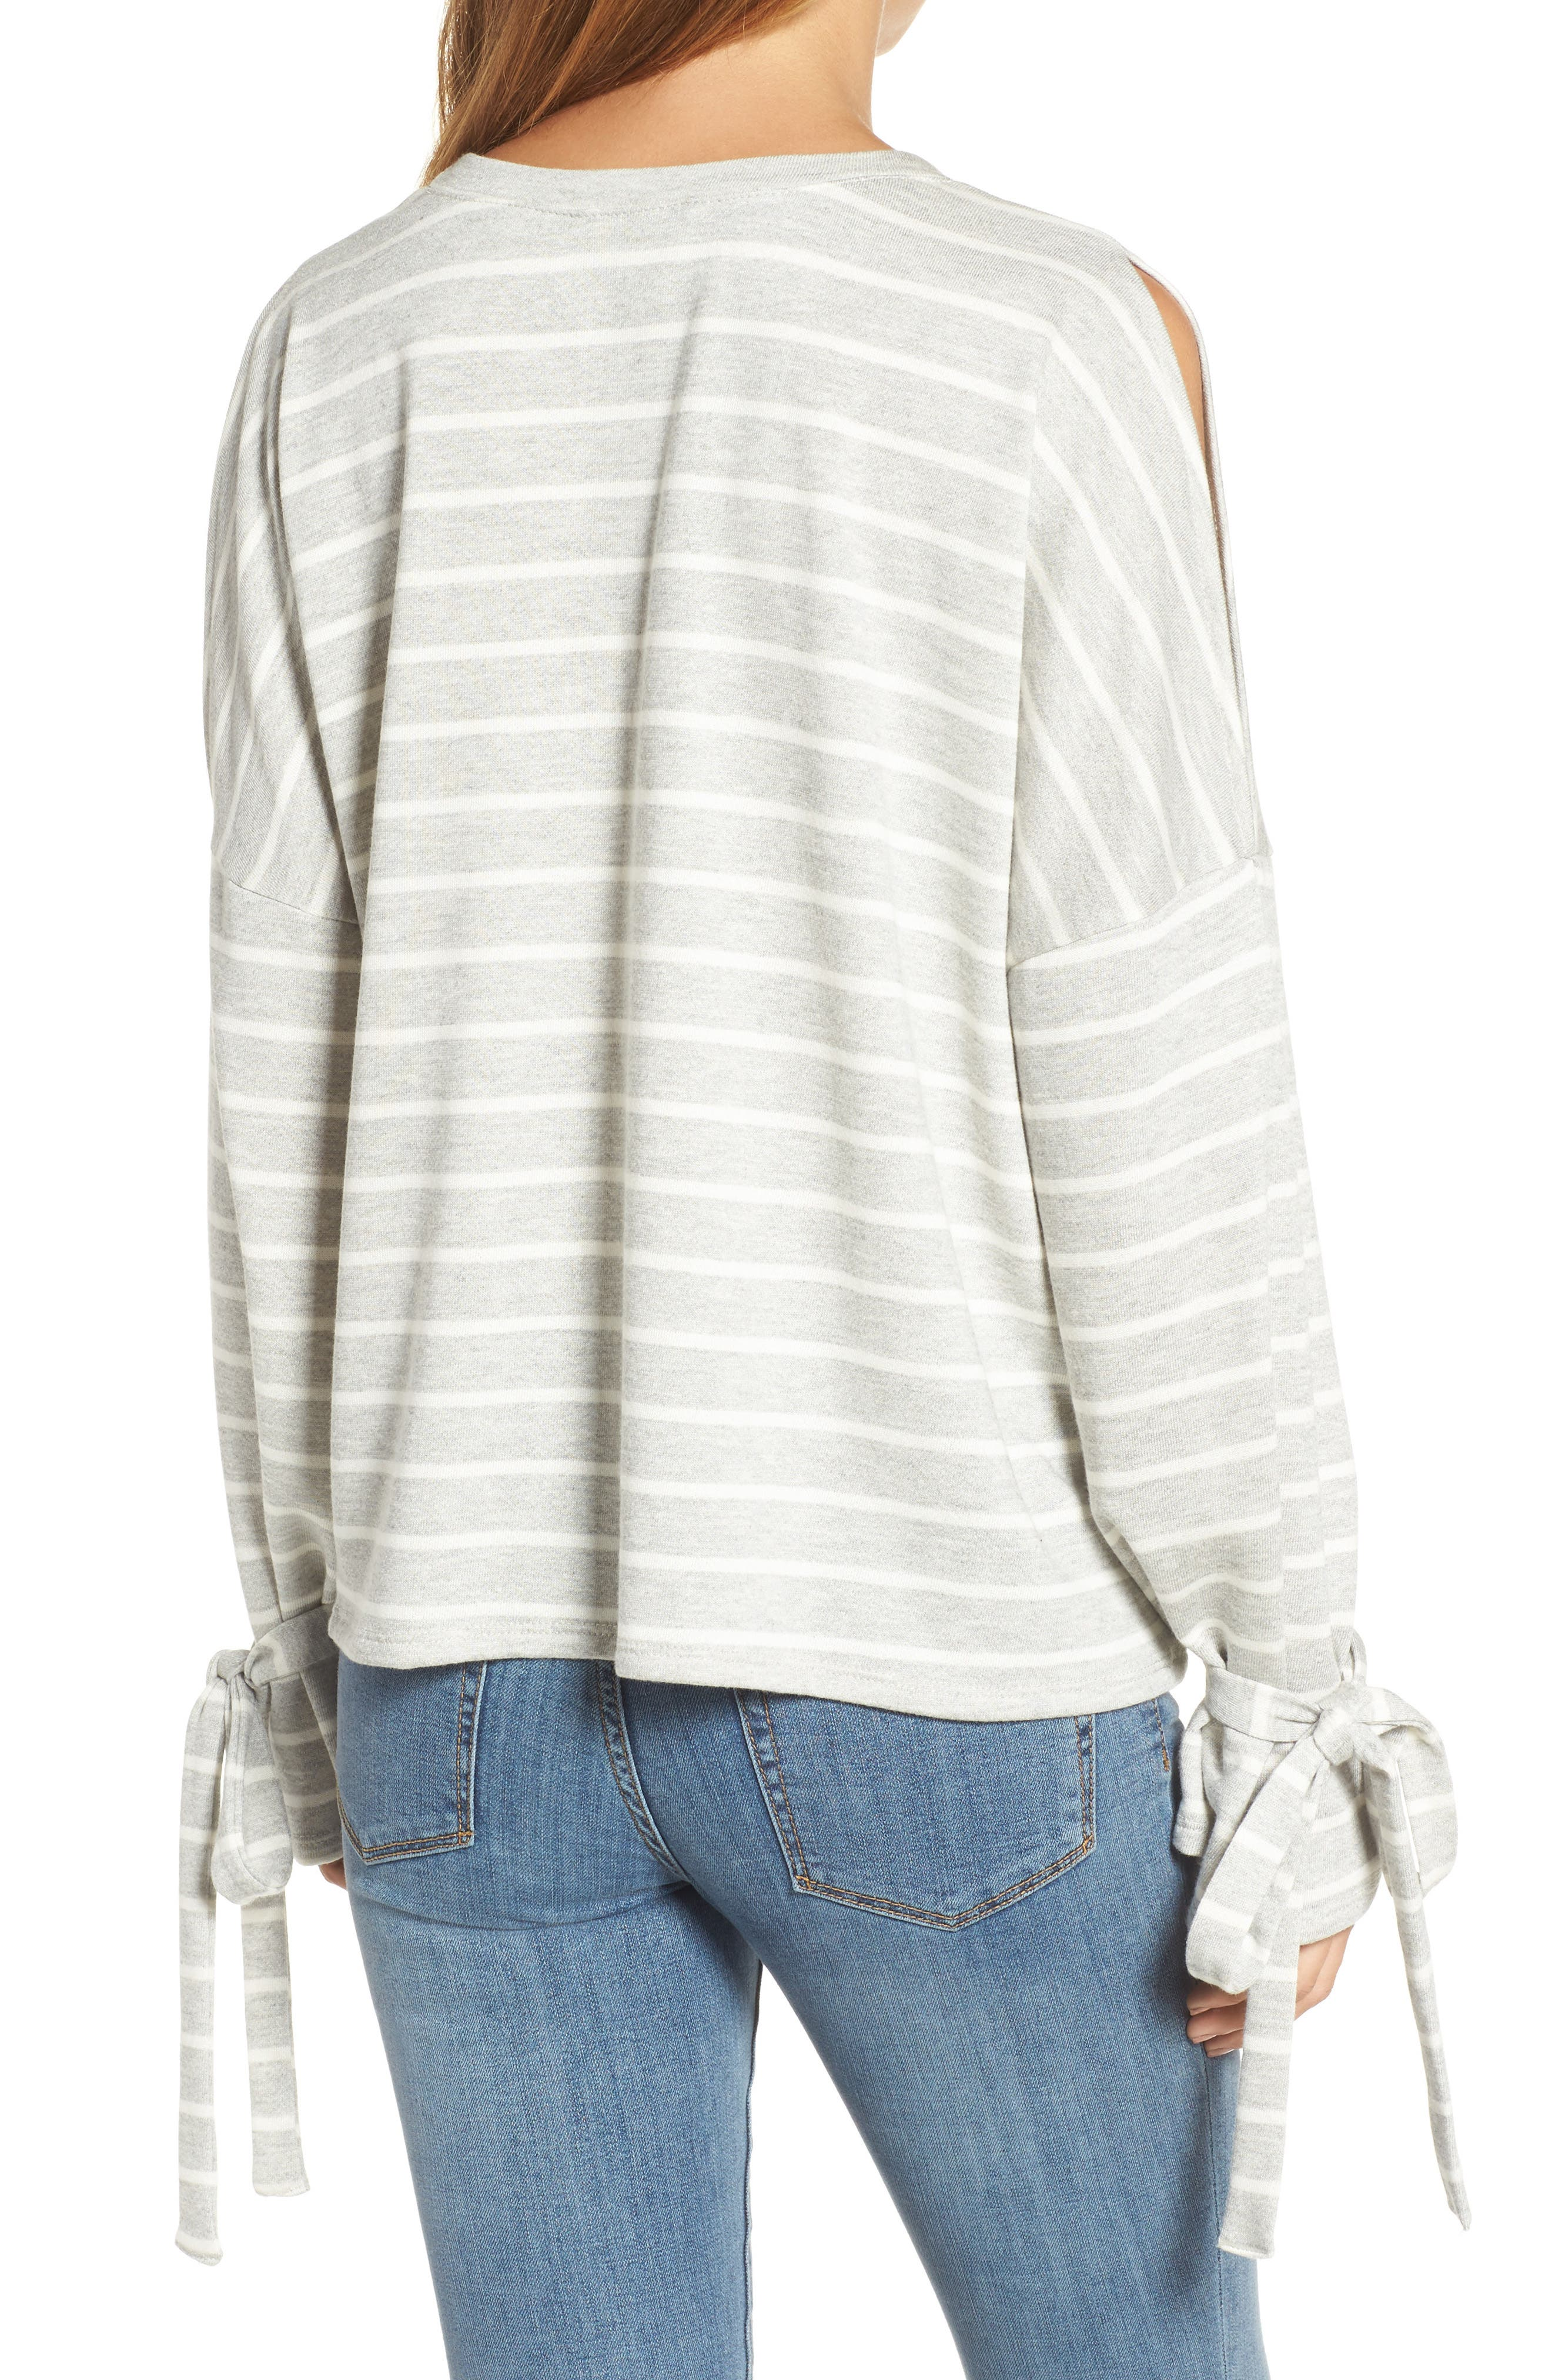 Calson<sup>®</sup> Cold Shoulder Tie Sleeve Tee,                             Alternate thumbnail 2, color,                             030